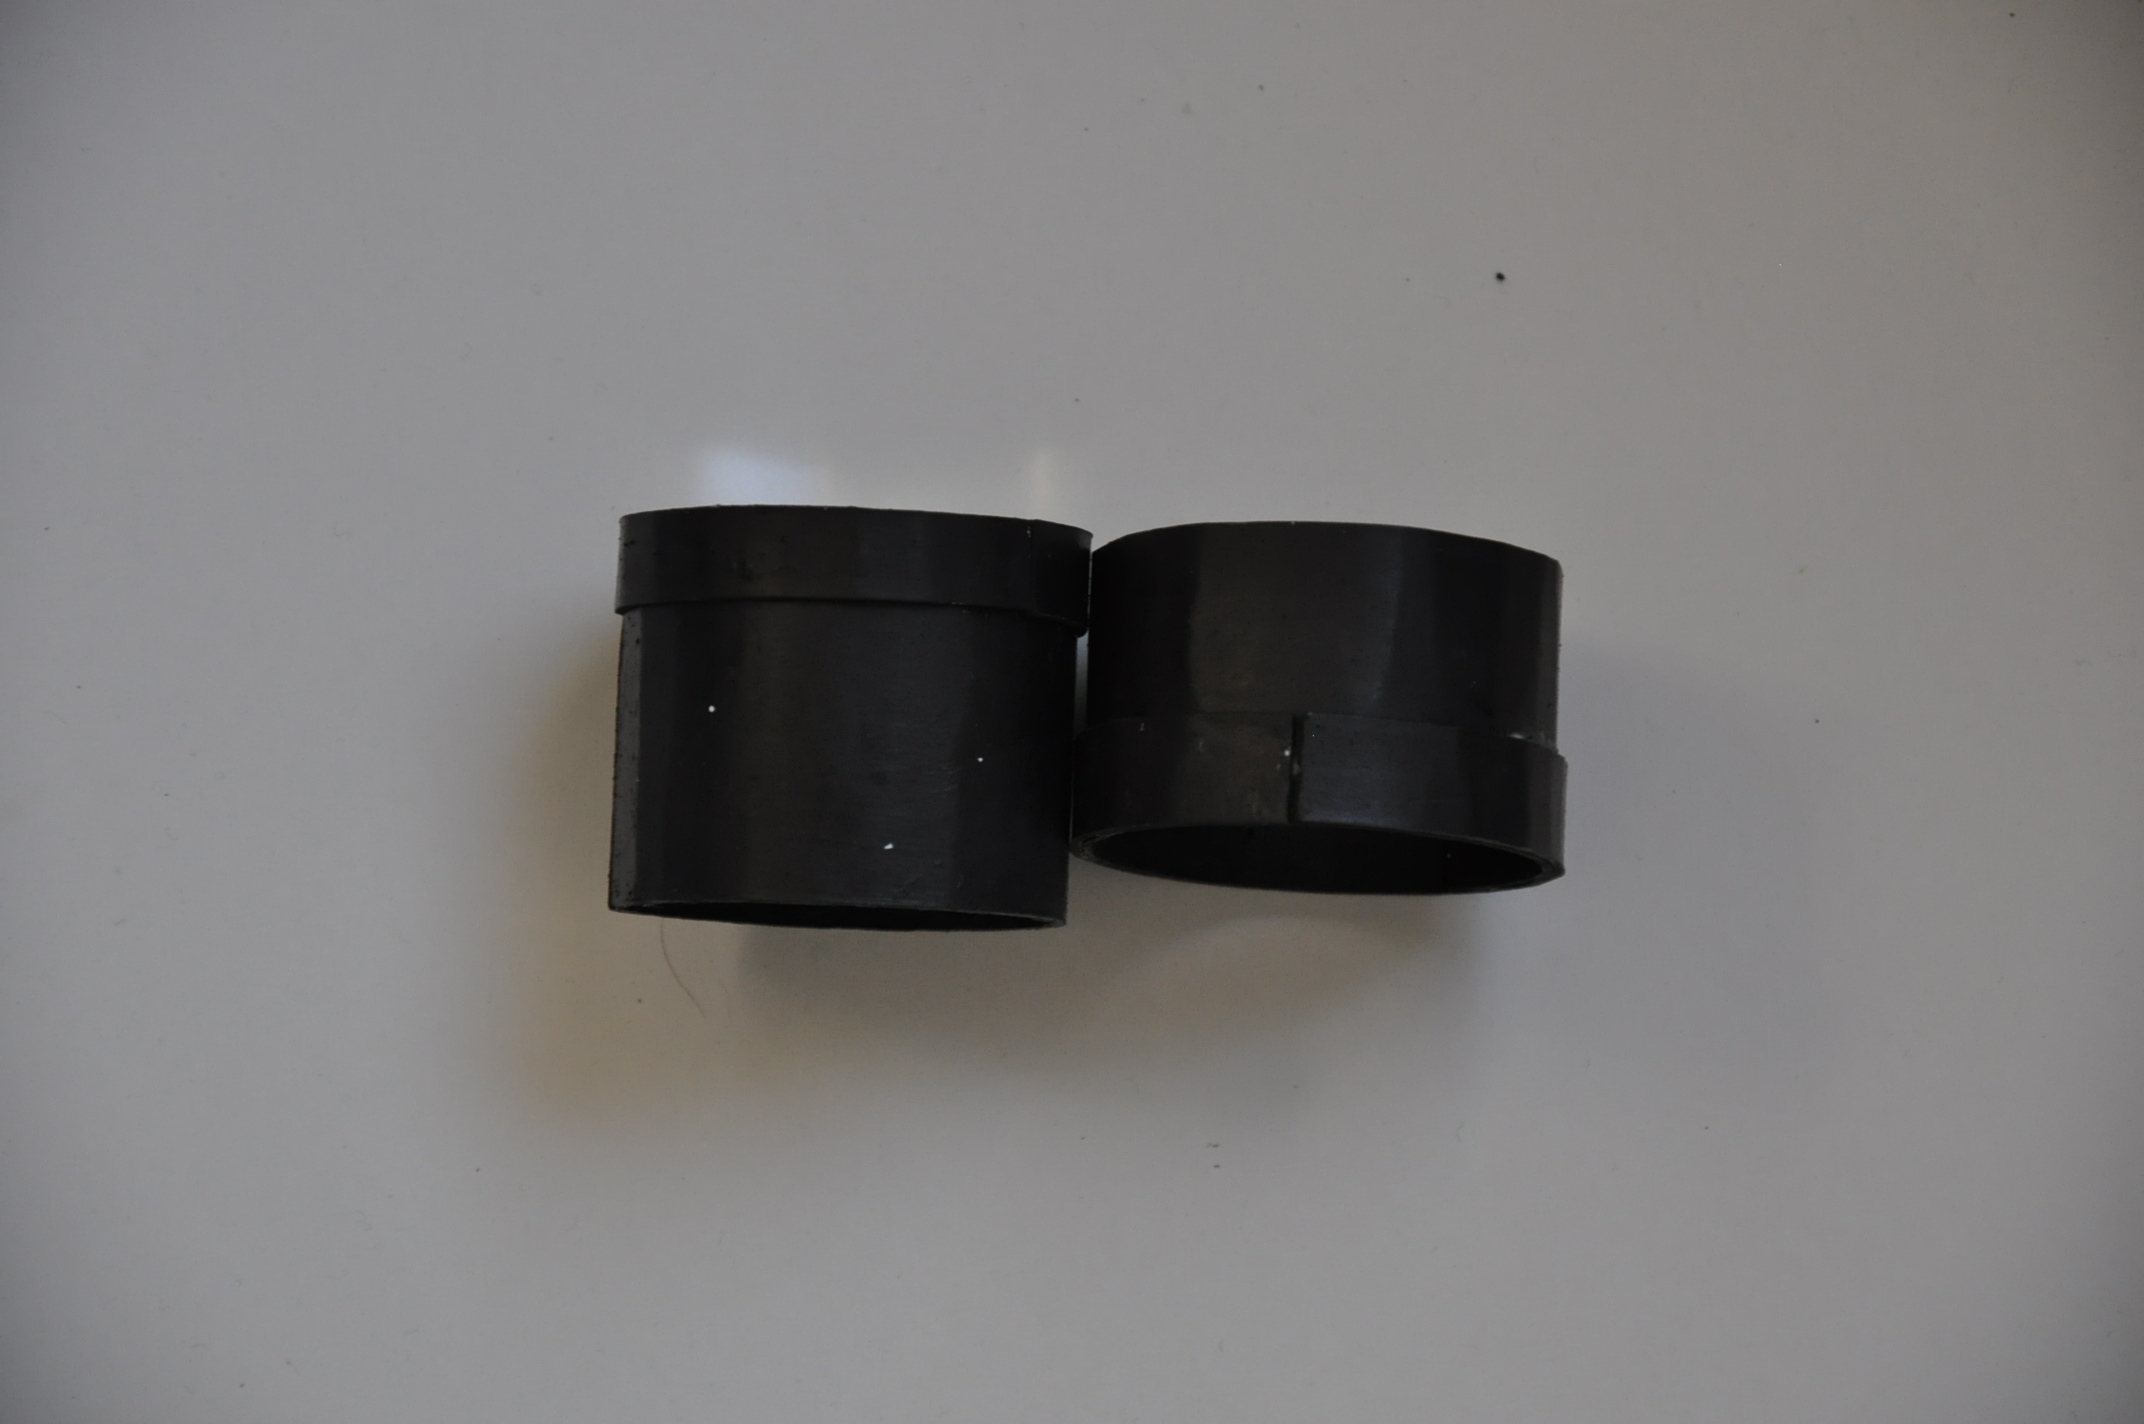 Picture of The Lens